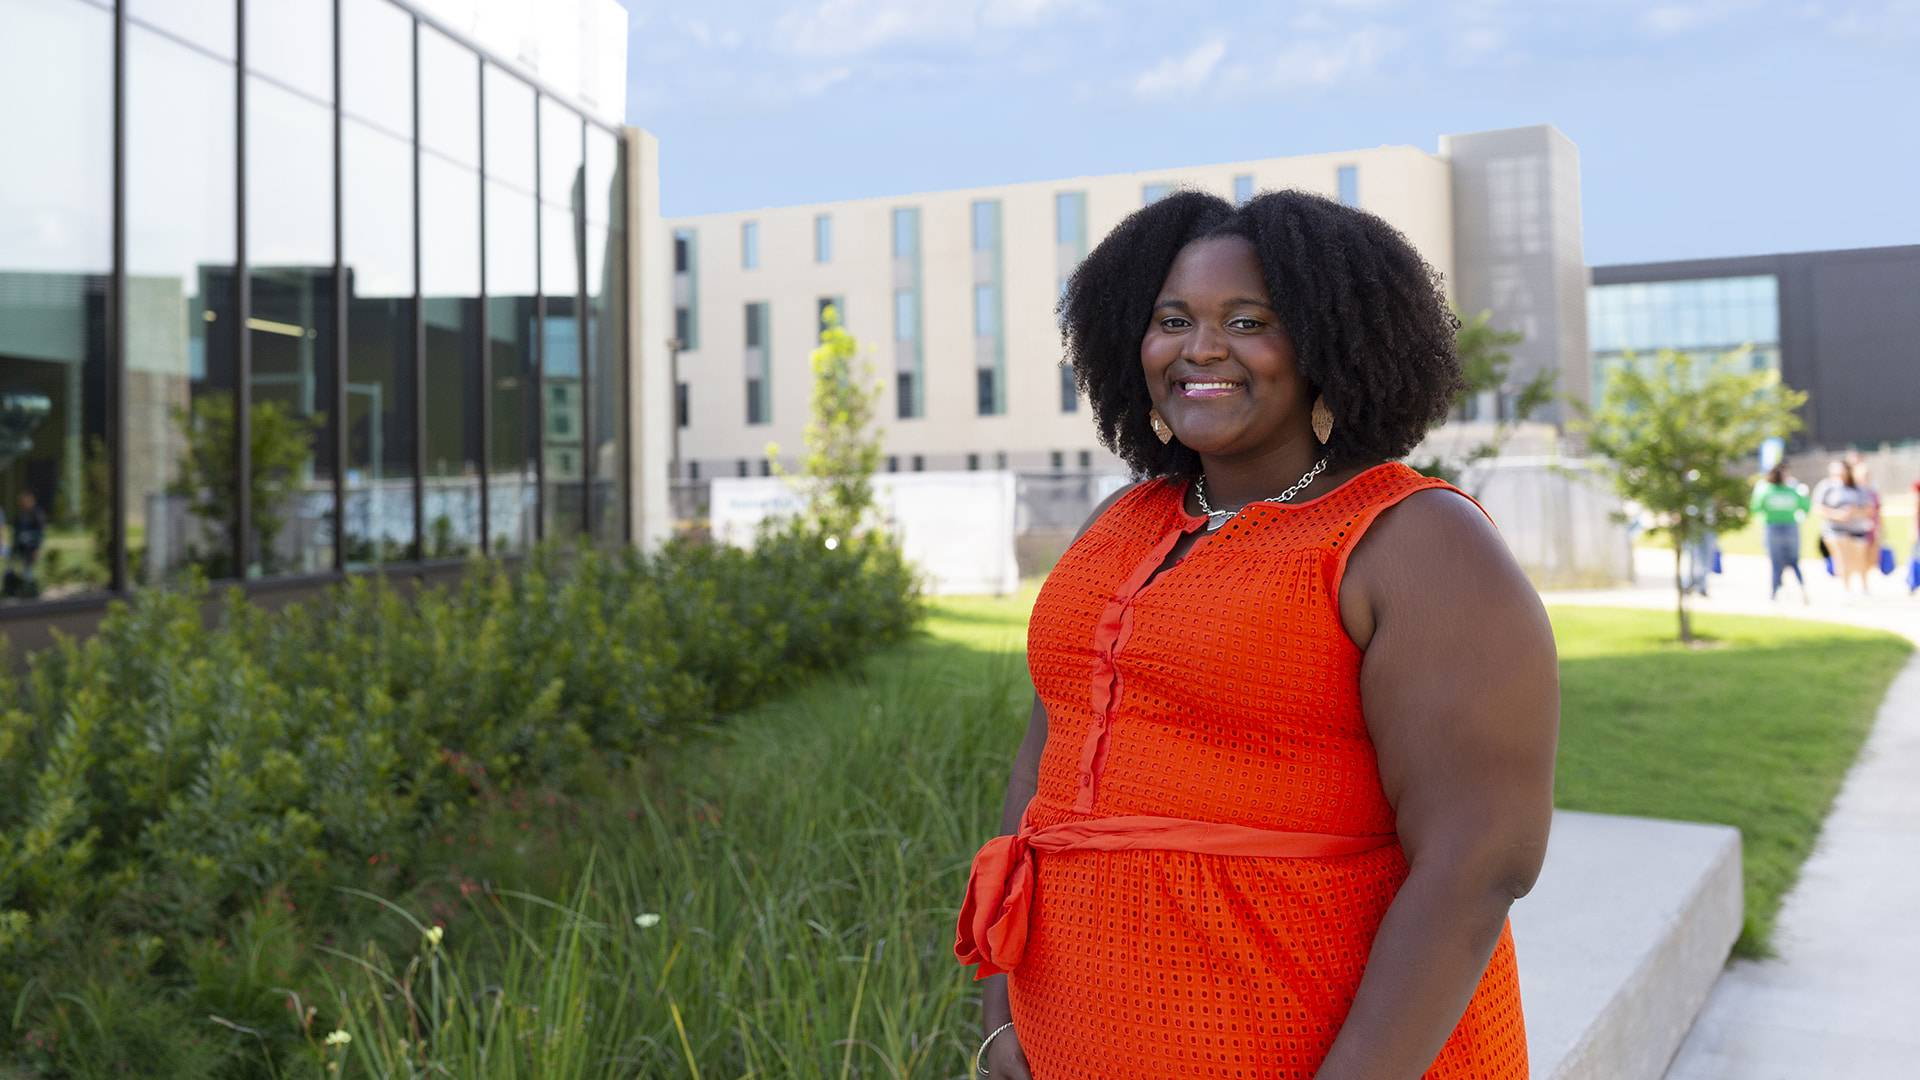 Resident adviser aims to foster understanding, sense of belonging in Hunter Hall